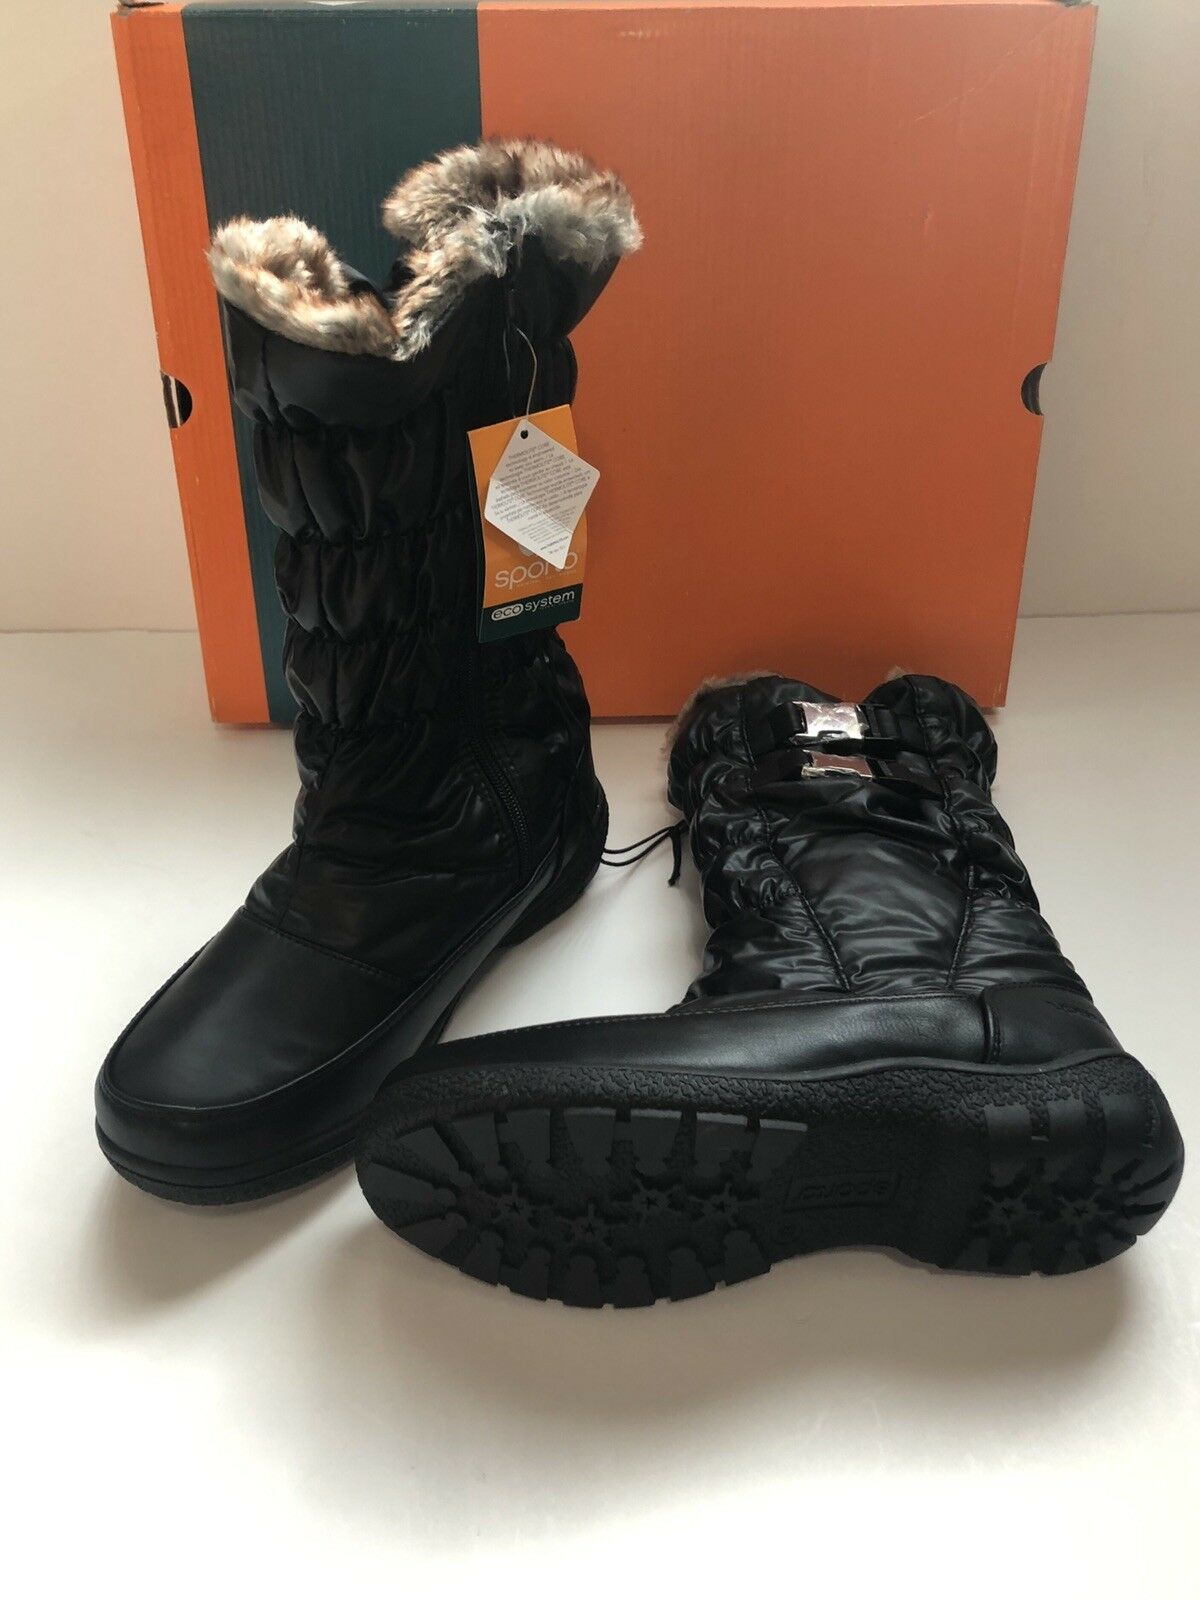 Sporto MAKELA Cold-Weather Waterproof Thermolite Boots Size 8.5 Retail  69